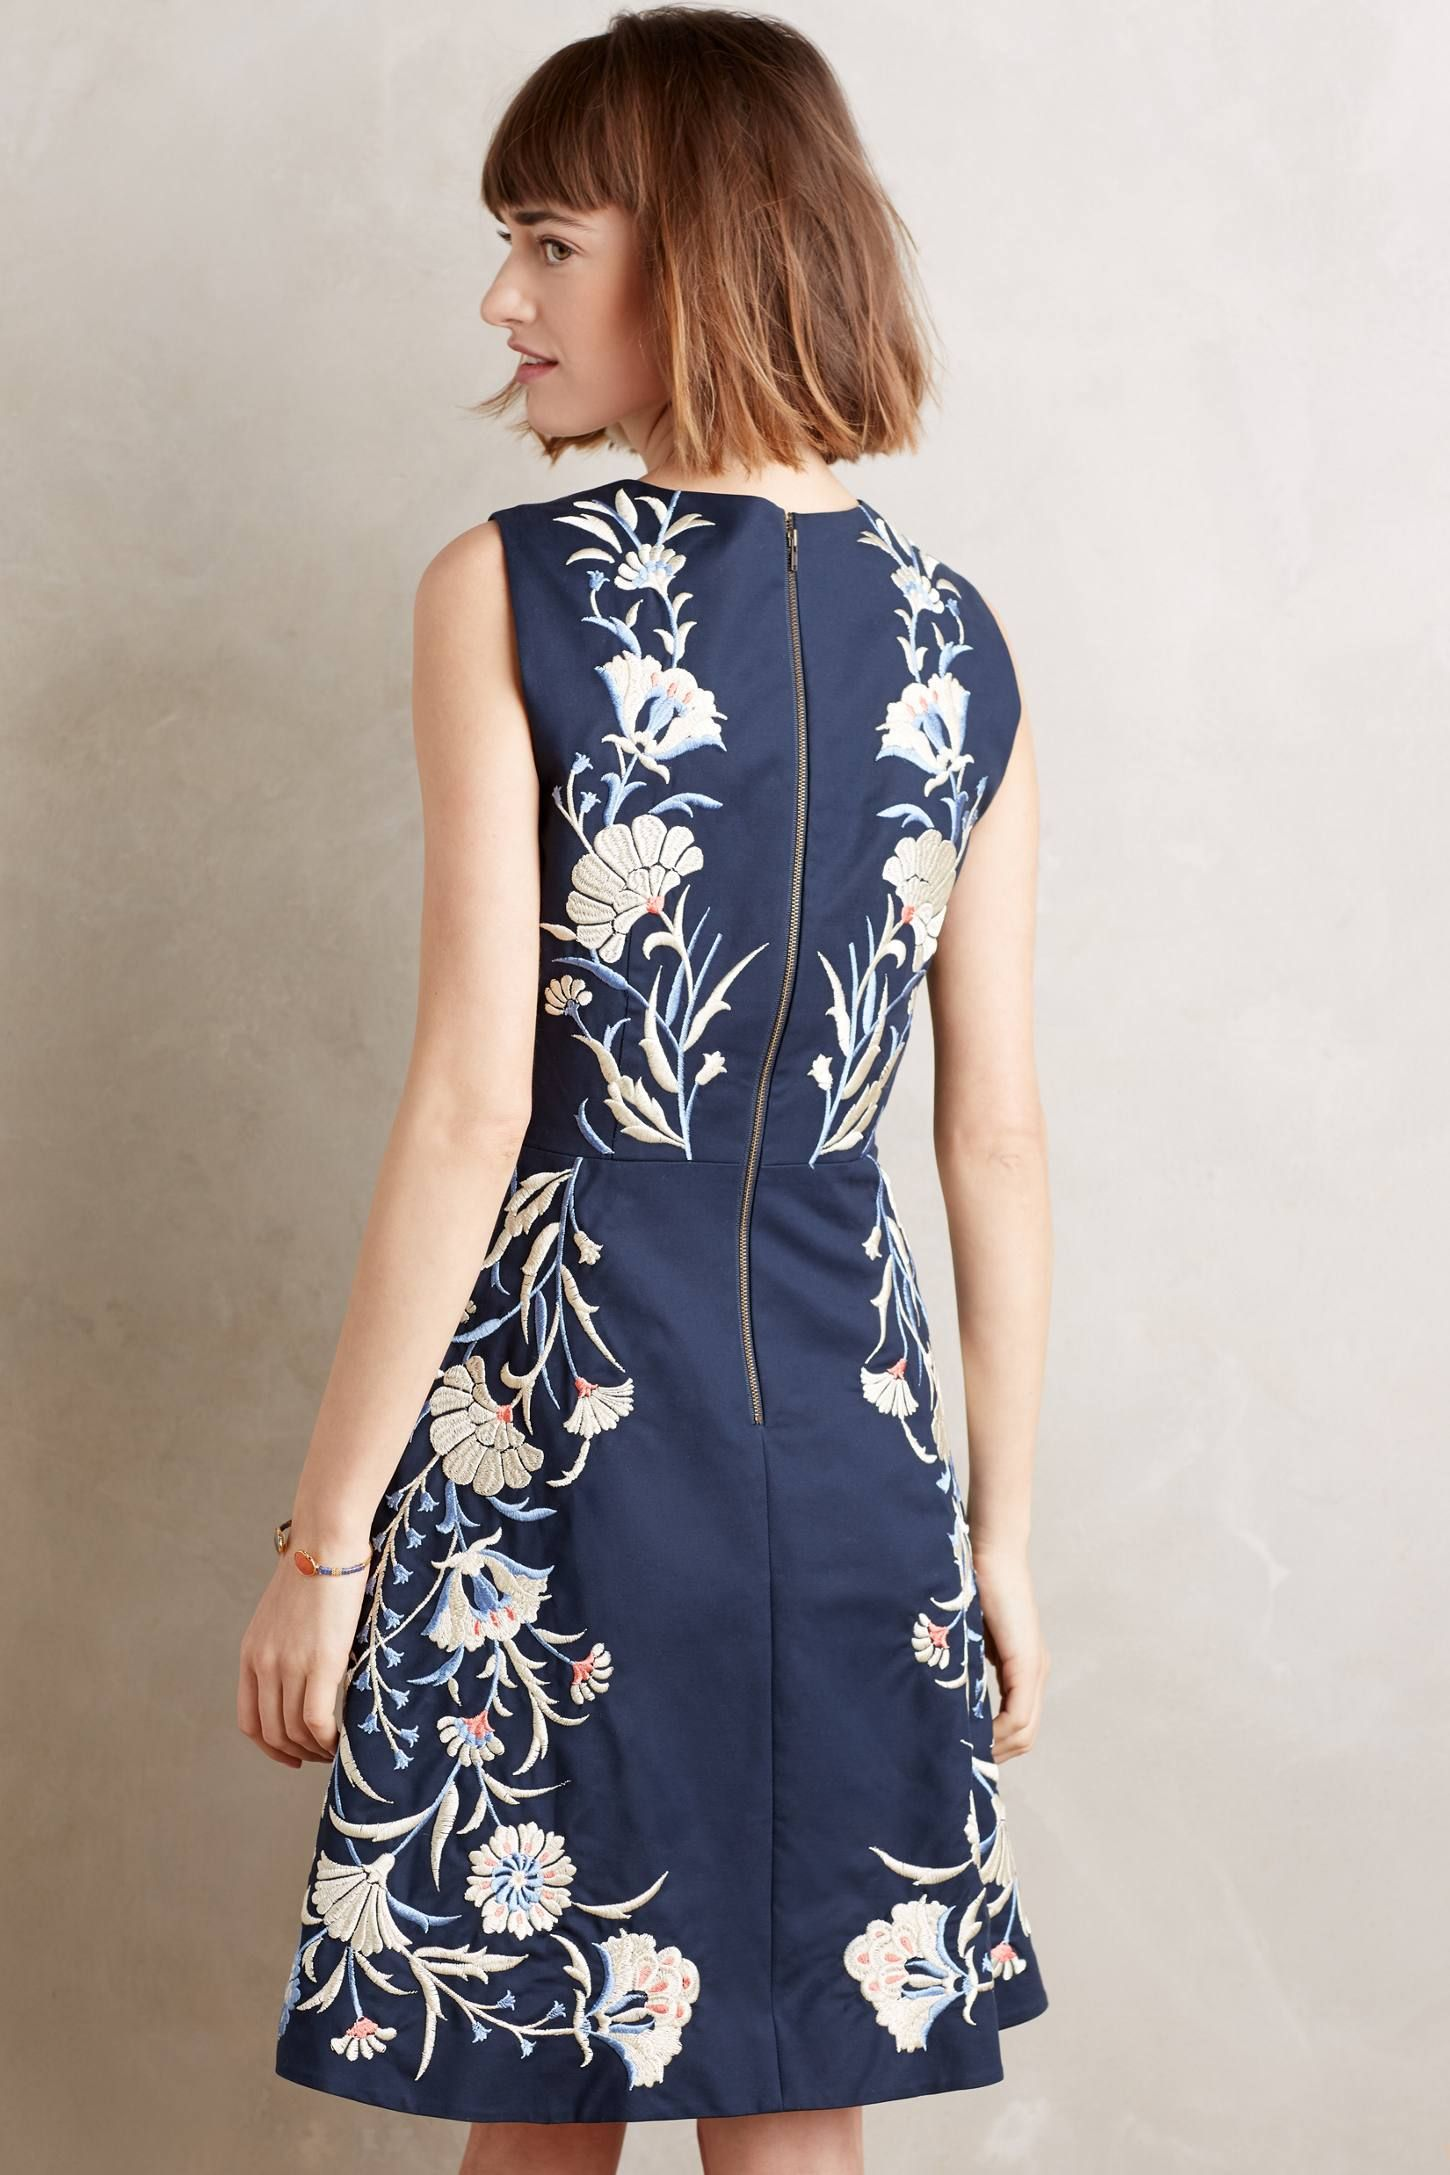 NWT-Anthropologie-Embroidered-Bellflower-Dress-by-Moulinette-Soeurs-